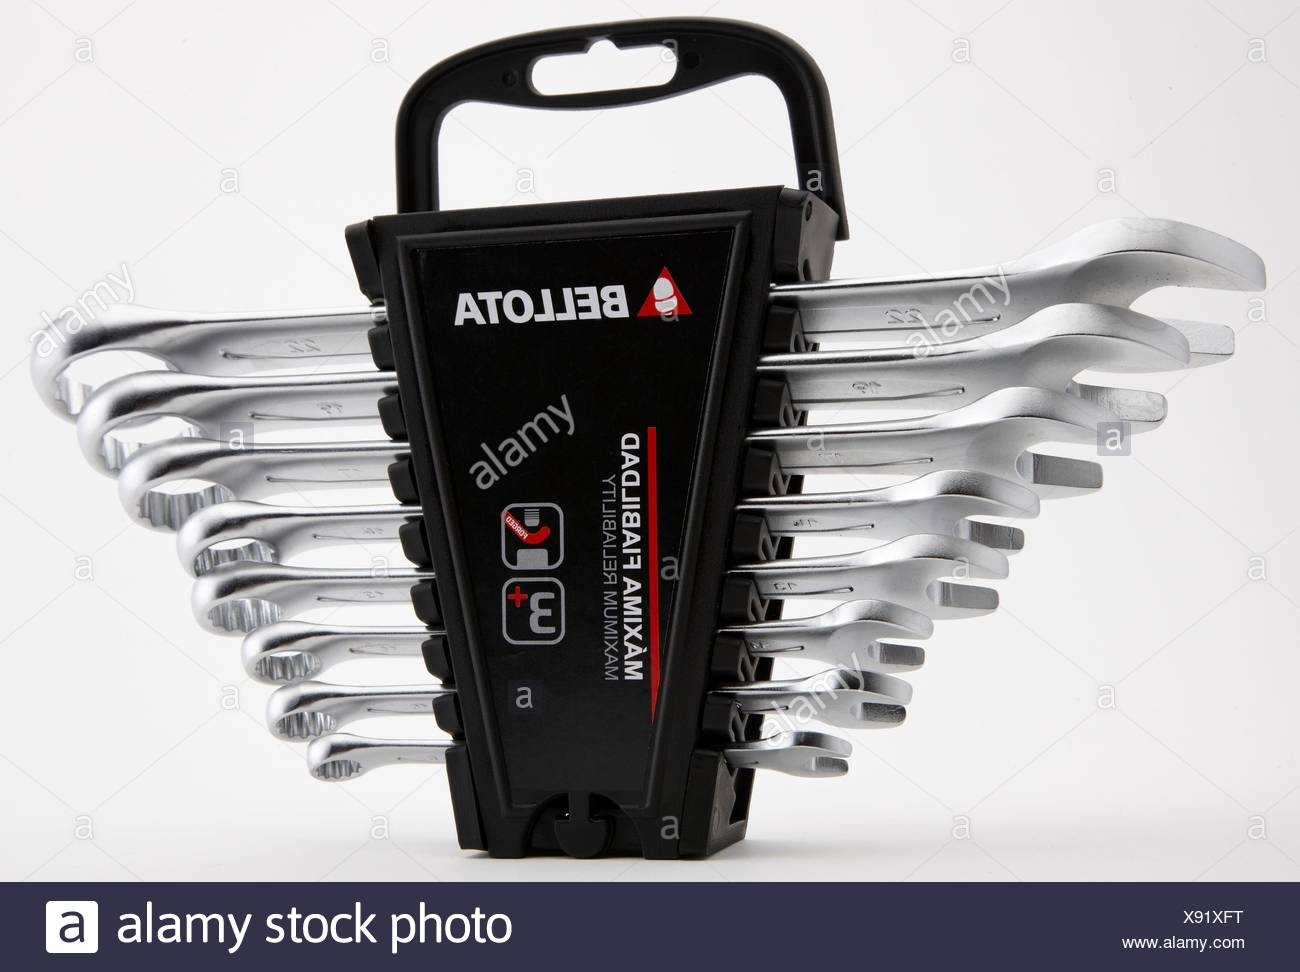 Set of combination spanners - Stock Image